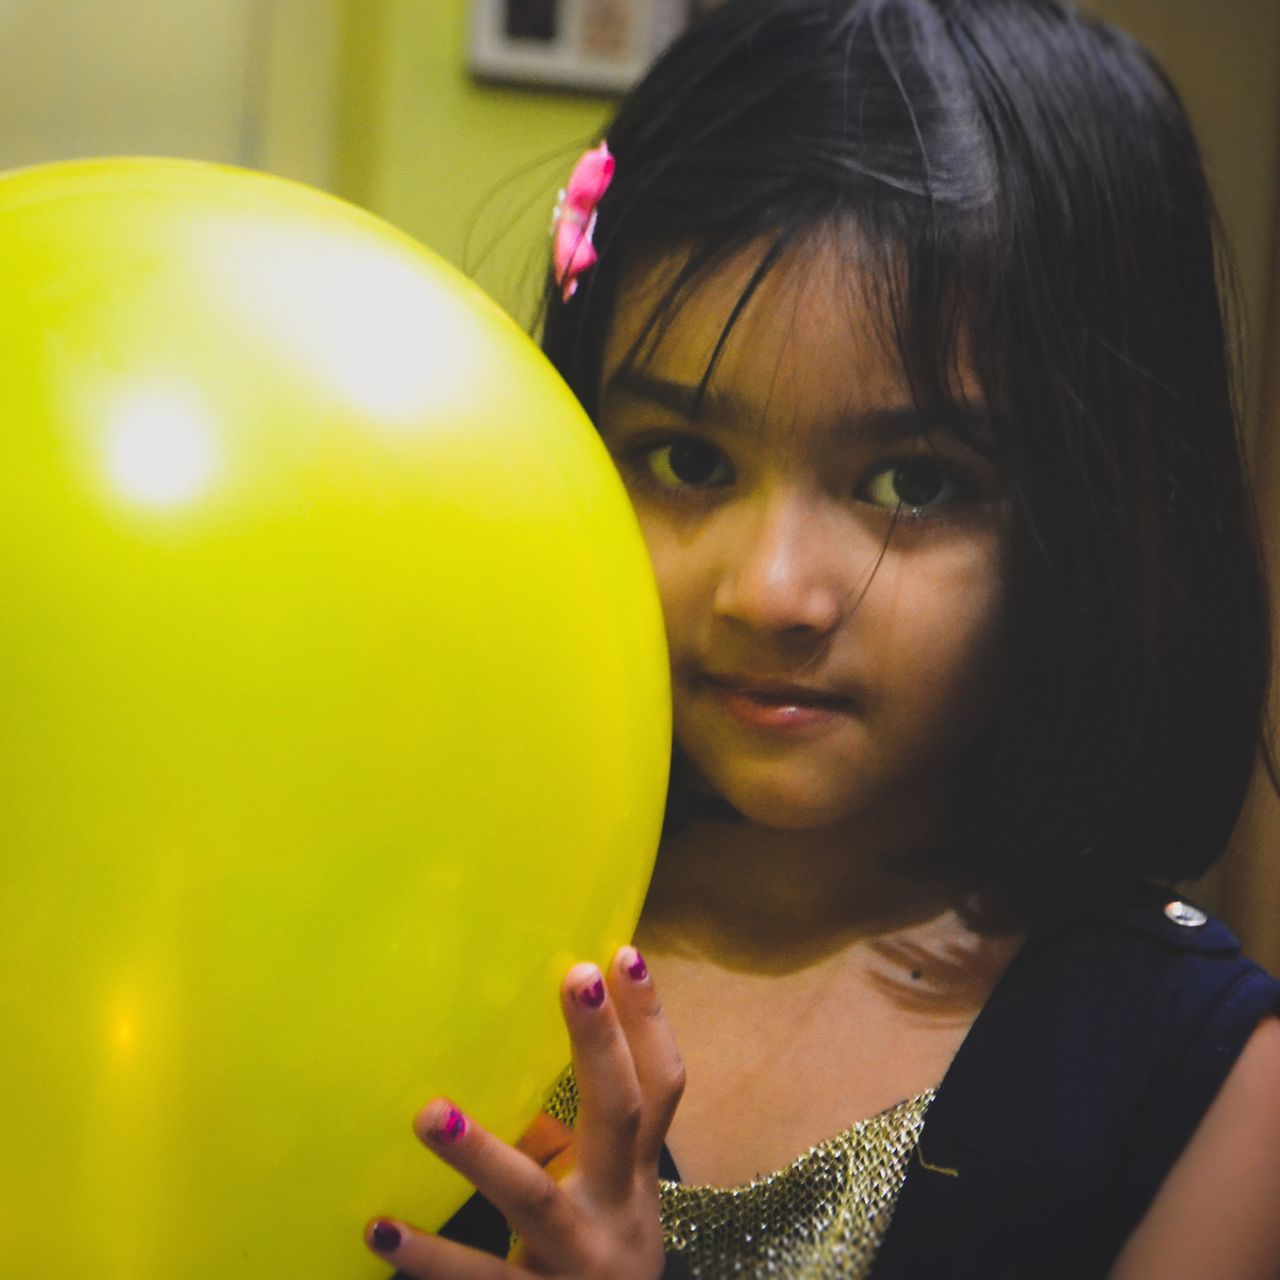 real people, one person, balloon, childhood, headshot, elementary age, leisure activity, focus on foreground, holding, girls, close-up, lifestyles, indoors, day, young adult